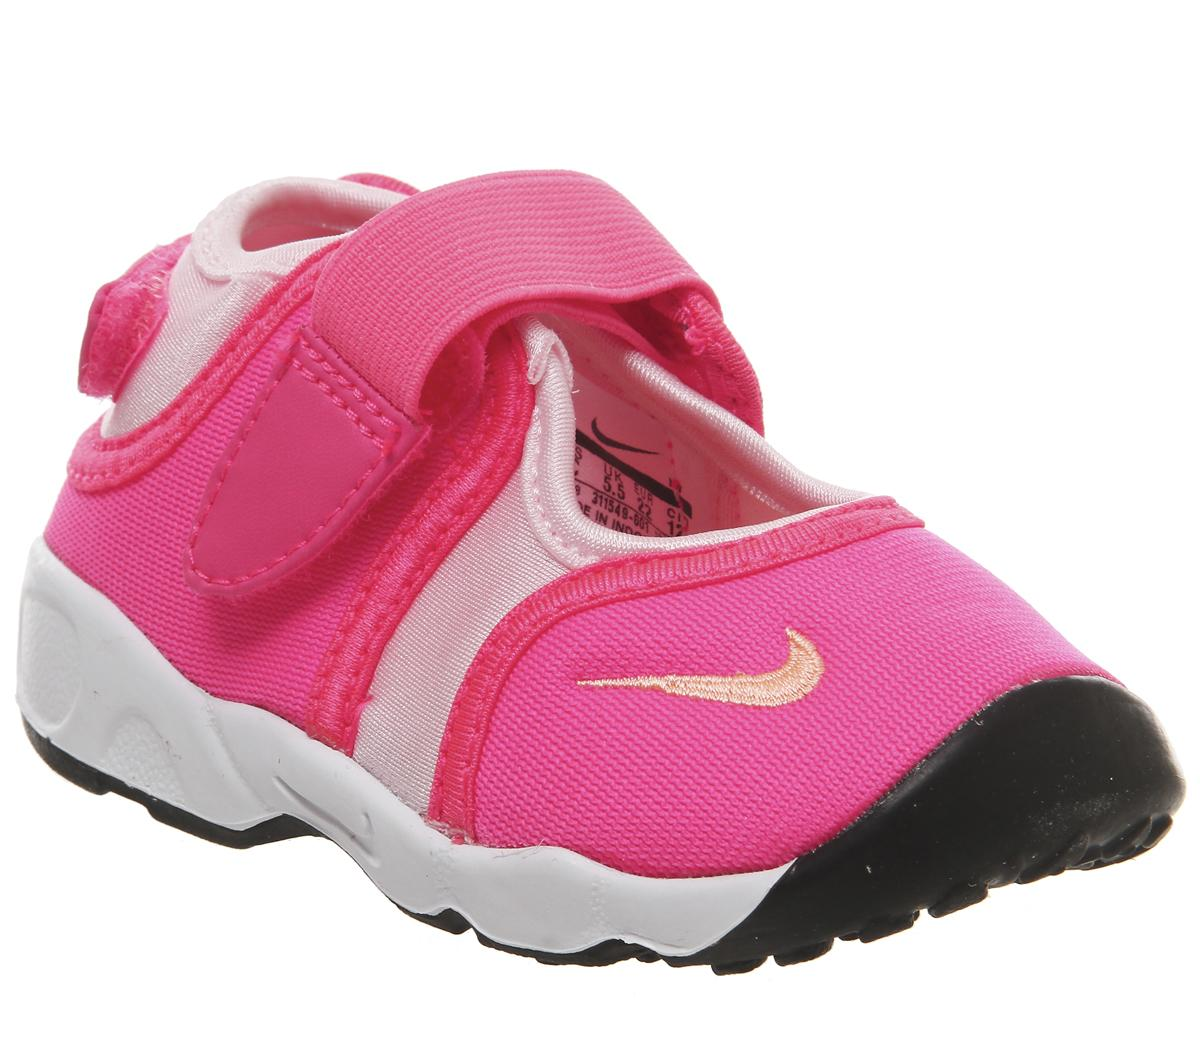 Buscar a tientas Misionero gancho  Nike Rift Infant Trainers Racer Pink Sunset Glow White - Unisex